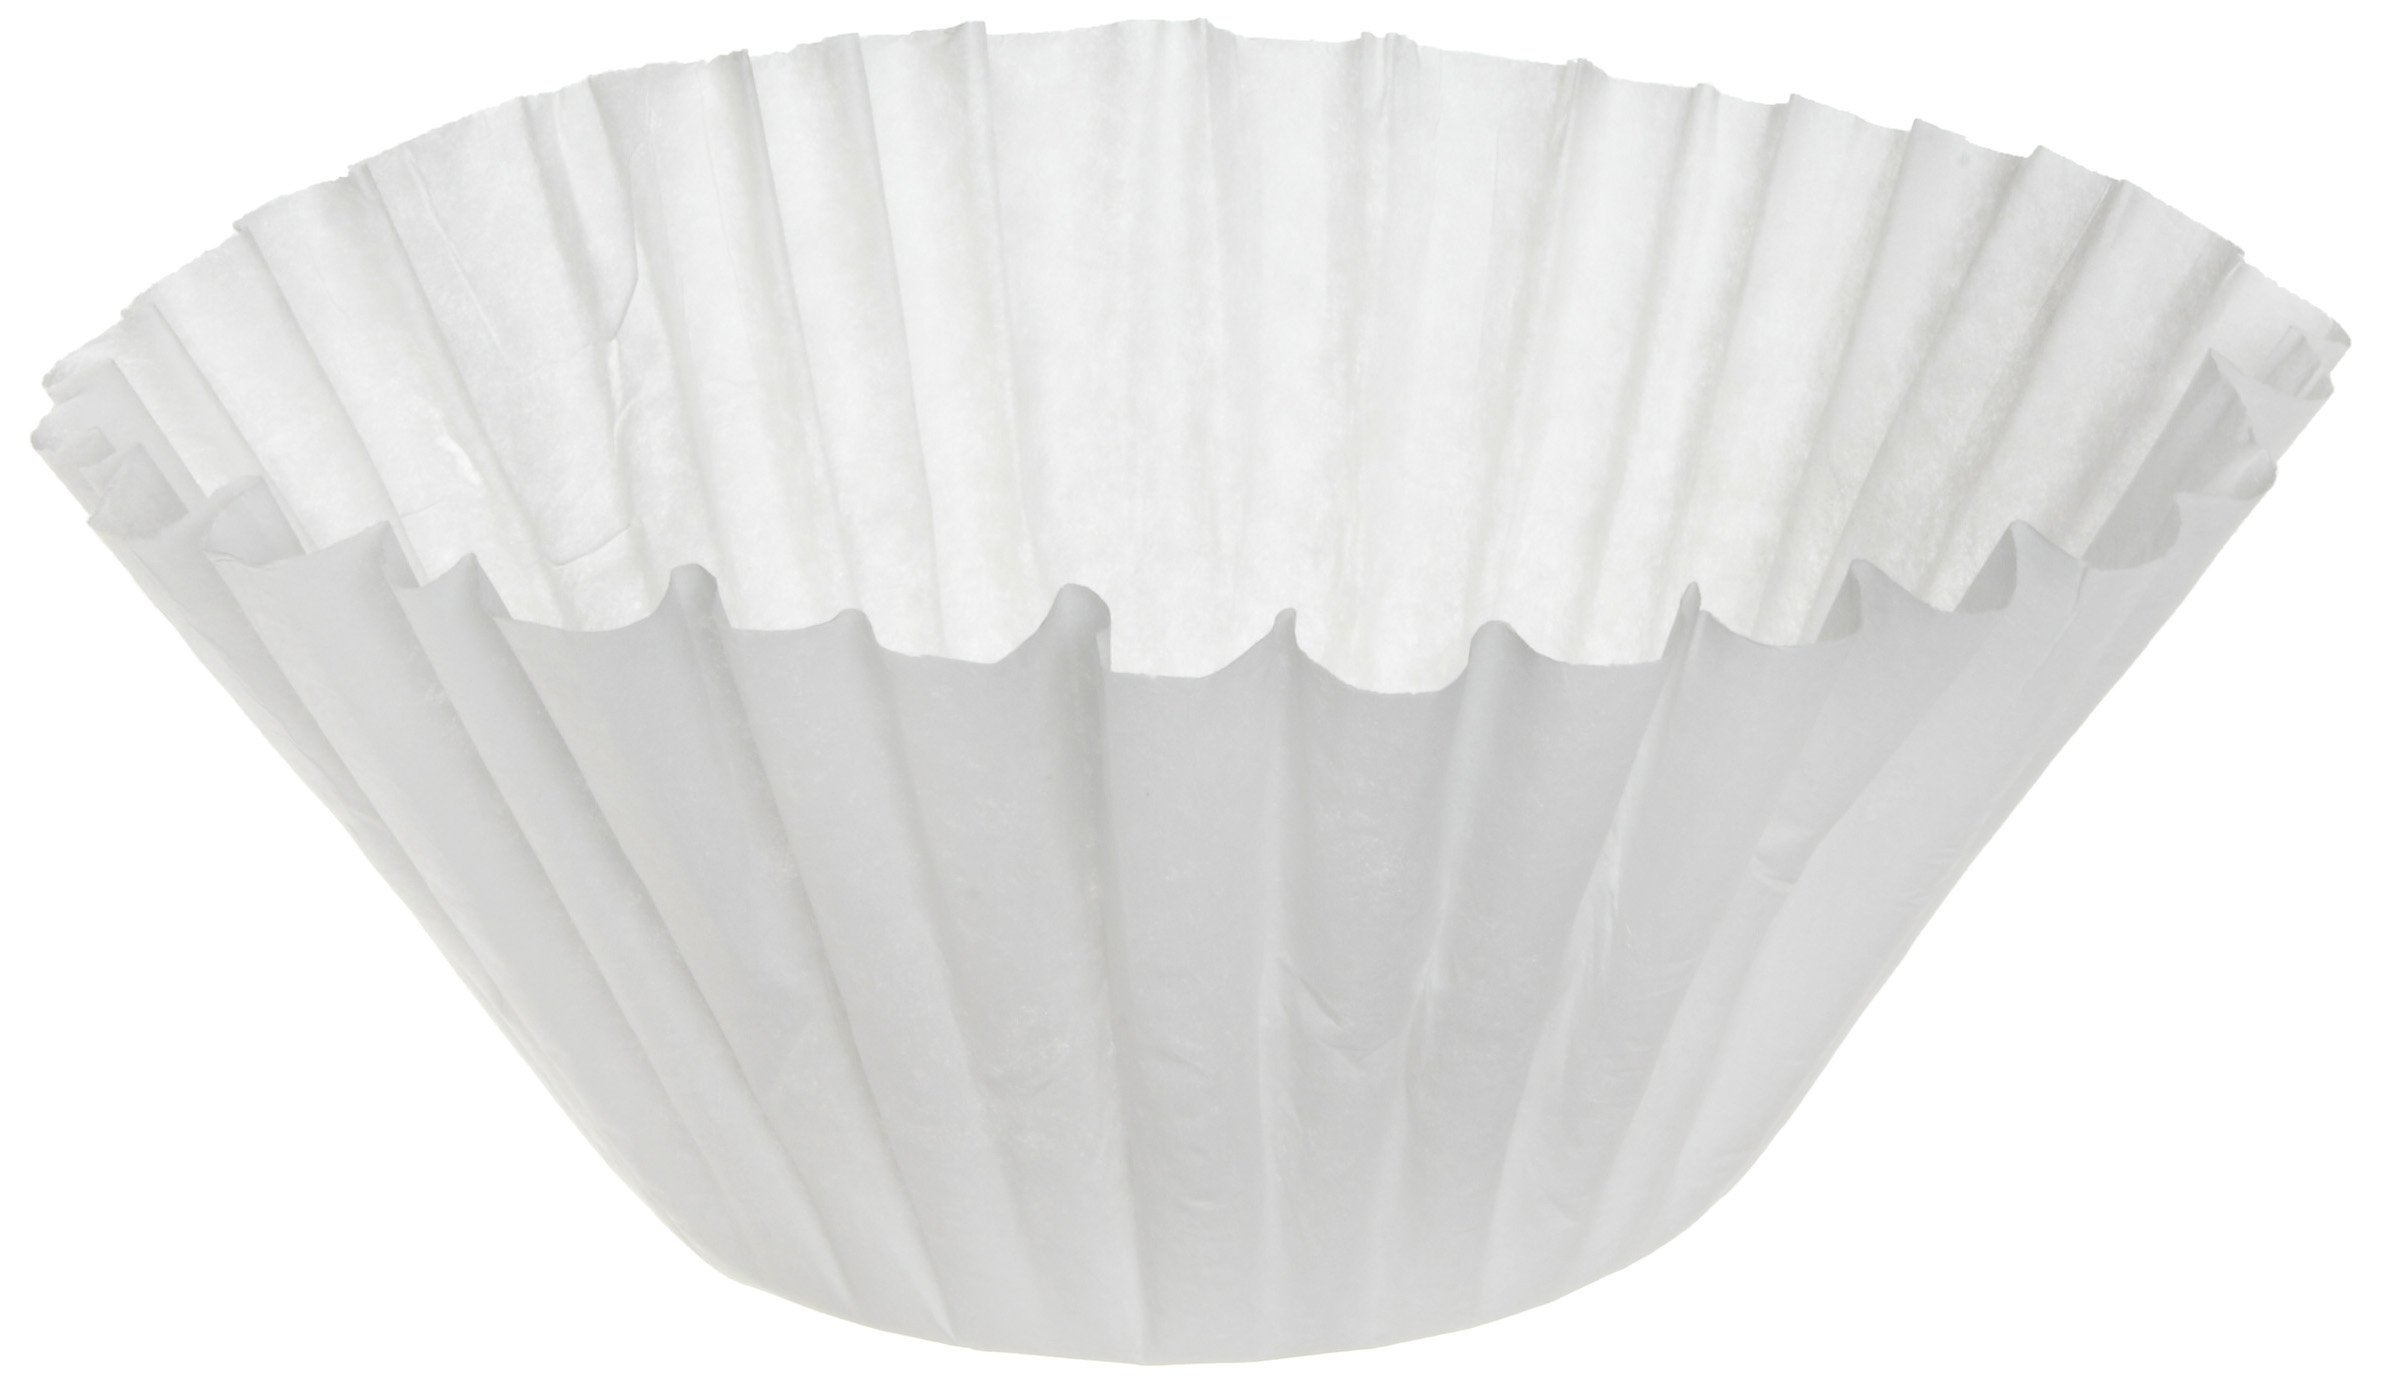 Bunn 20120 15-1/8 Inch x 5-3/8 Inch Coffee Filter (Case of 500)